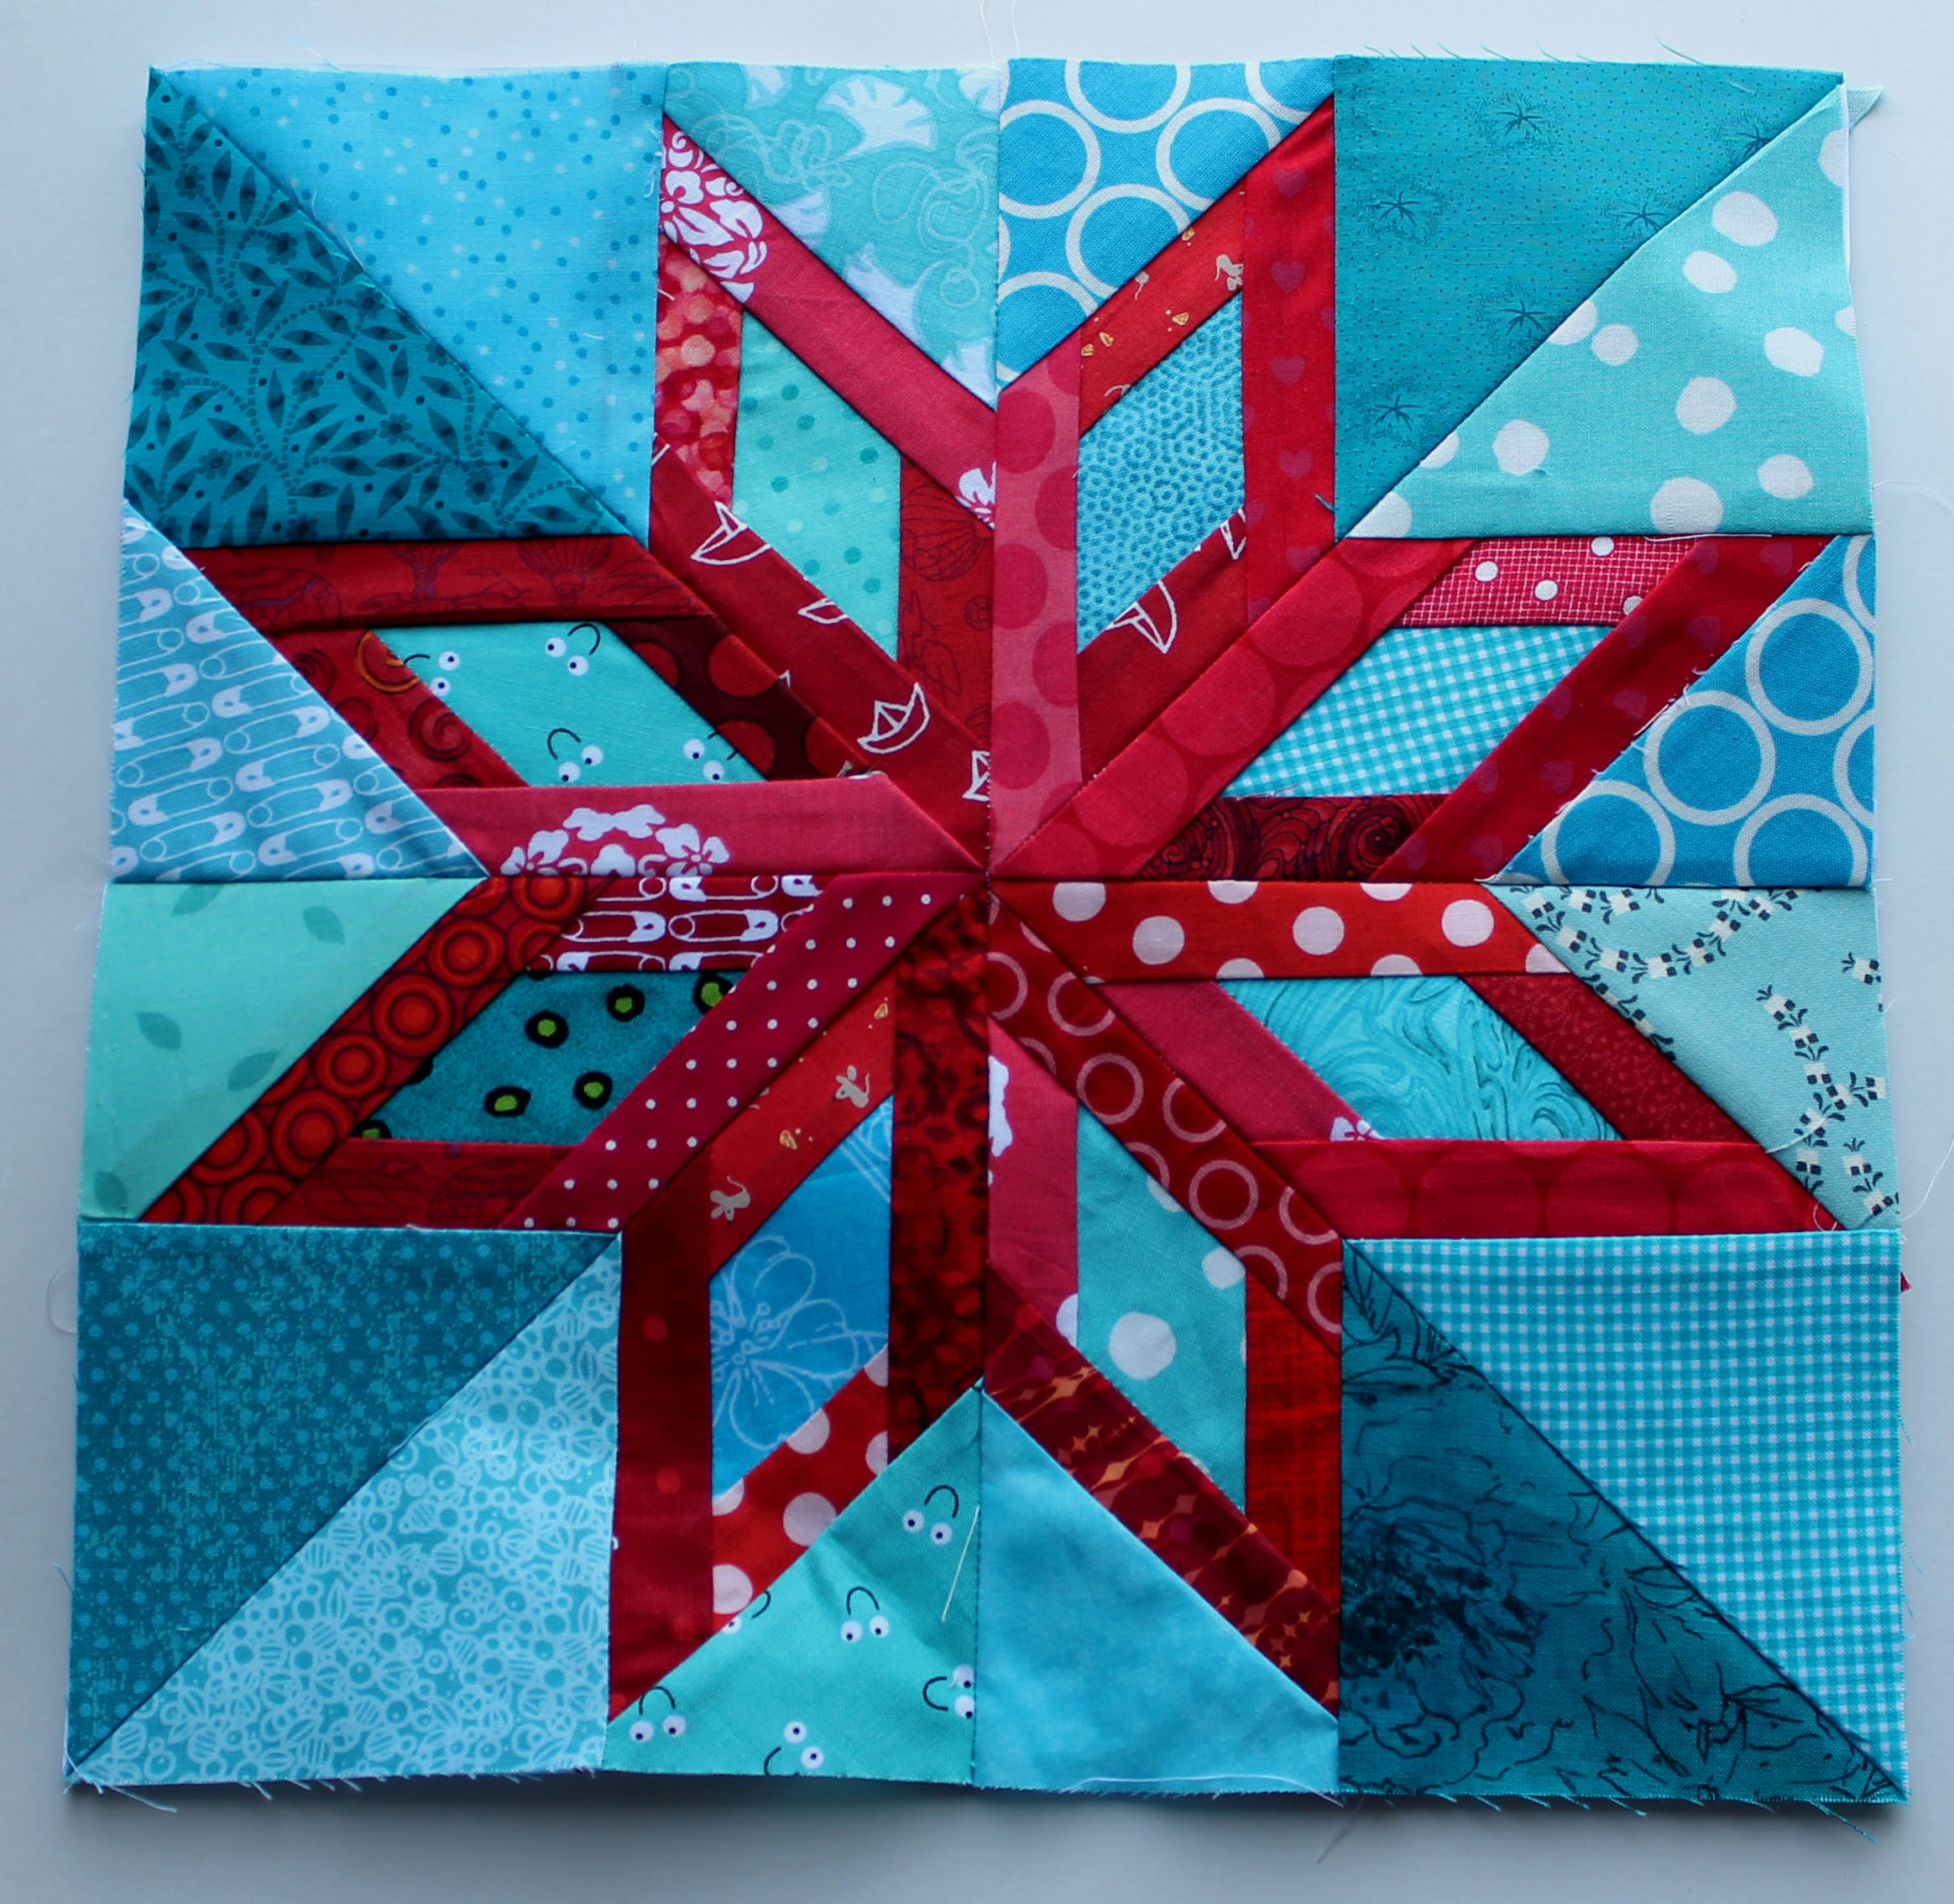 Free Paper Piecing Patterns Quilt Blocks : Paper Pieced Quilt Blocks - Bing images